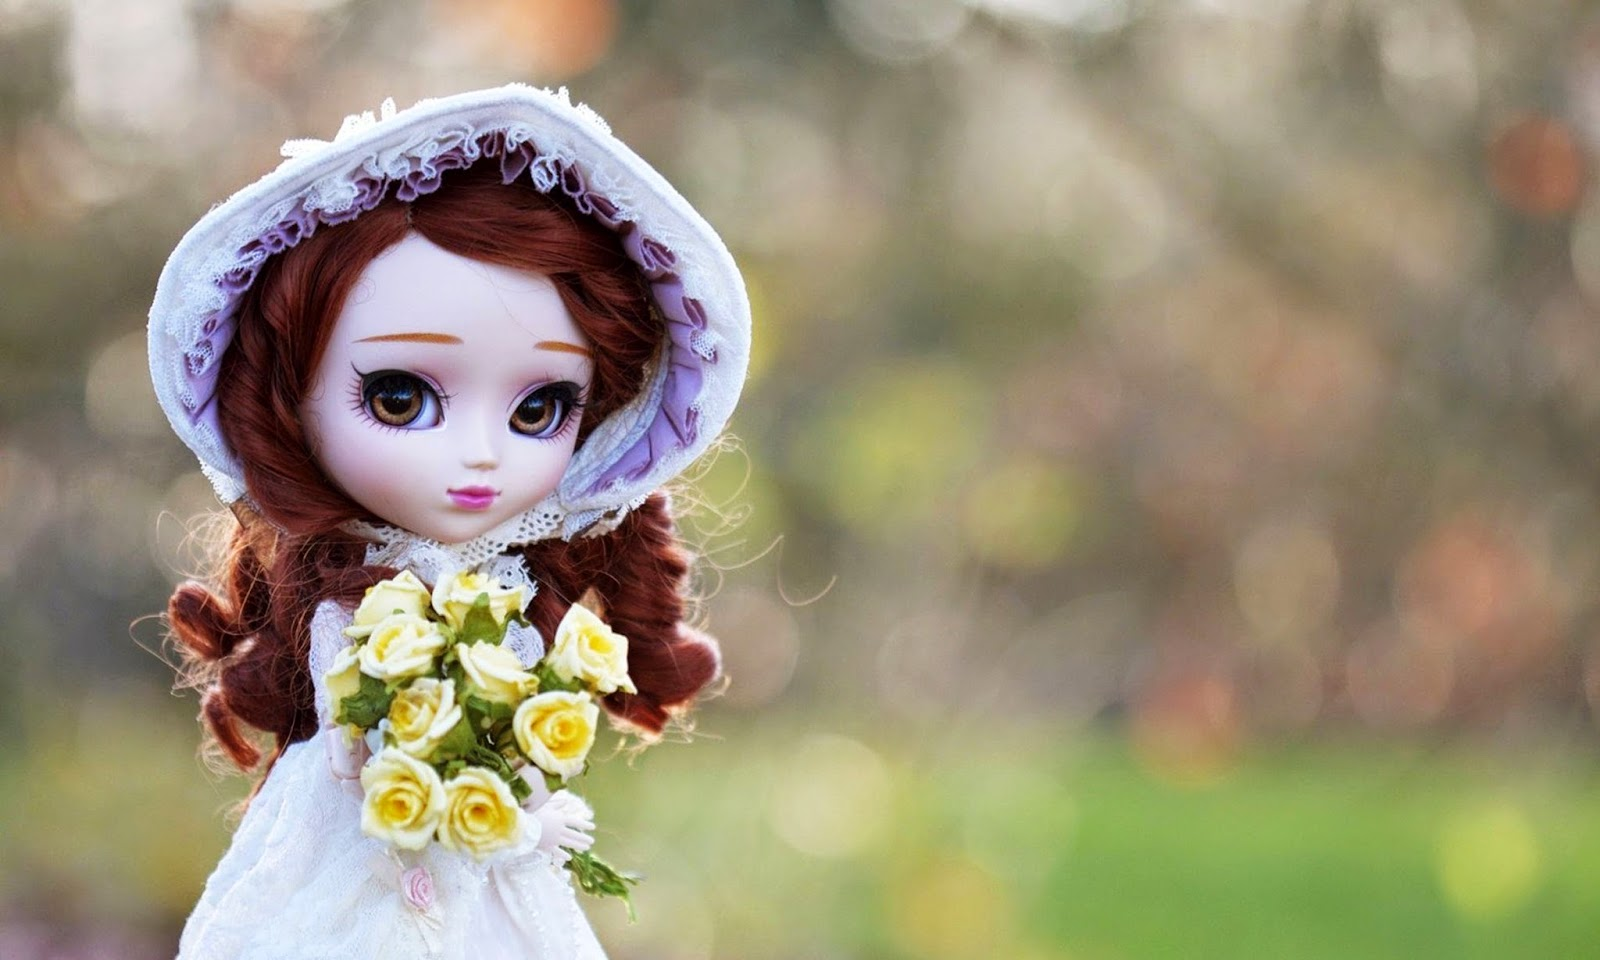 the best and prettiest doll images on the internet - download for free